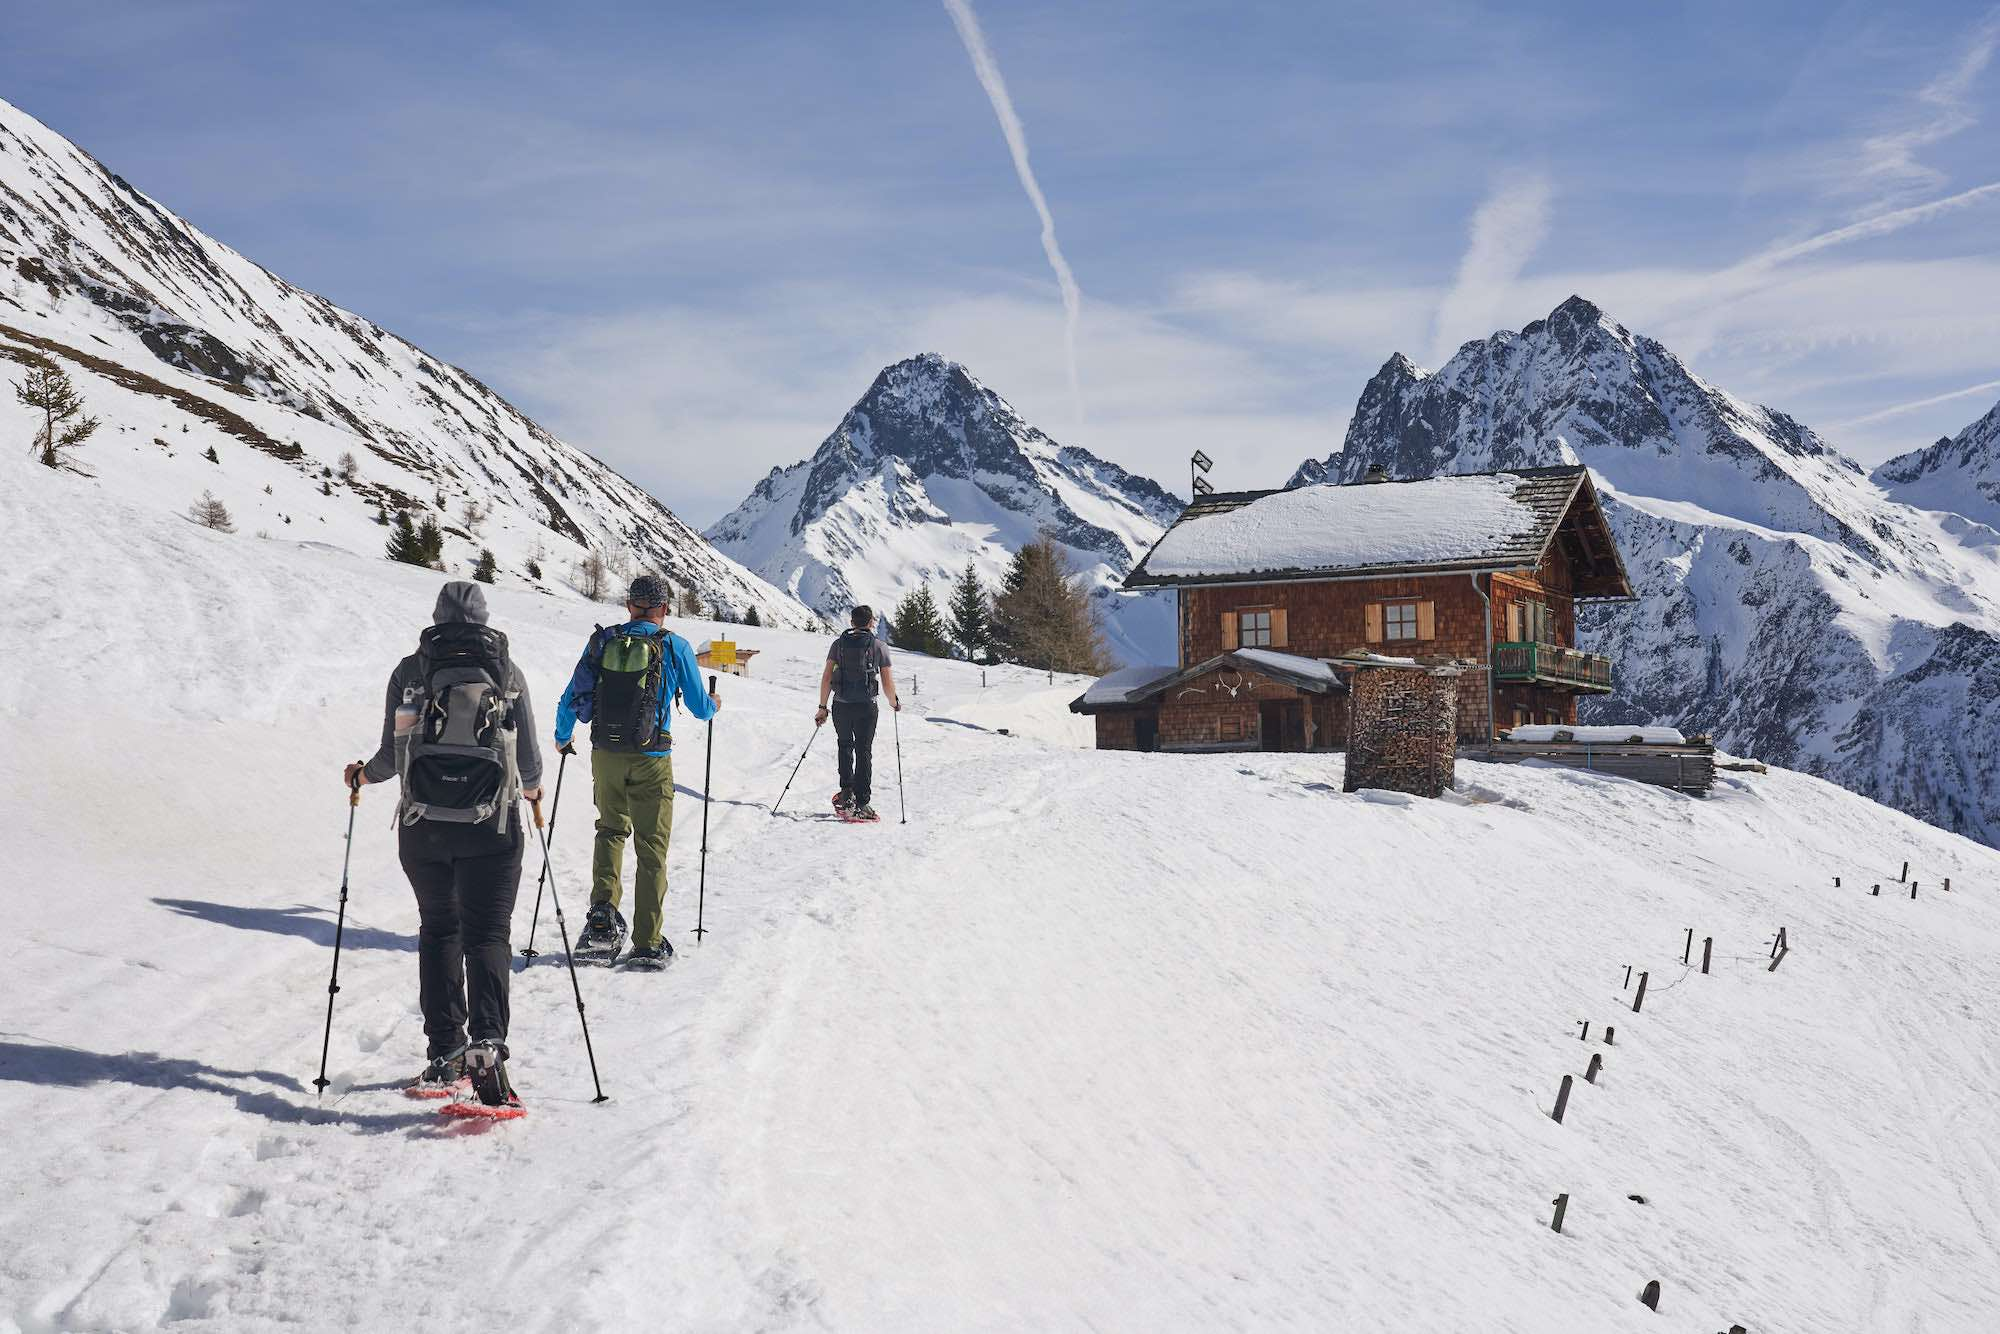 Guided snowshoeing holiday in Austria with daily yoga